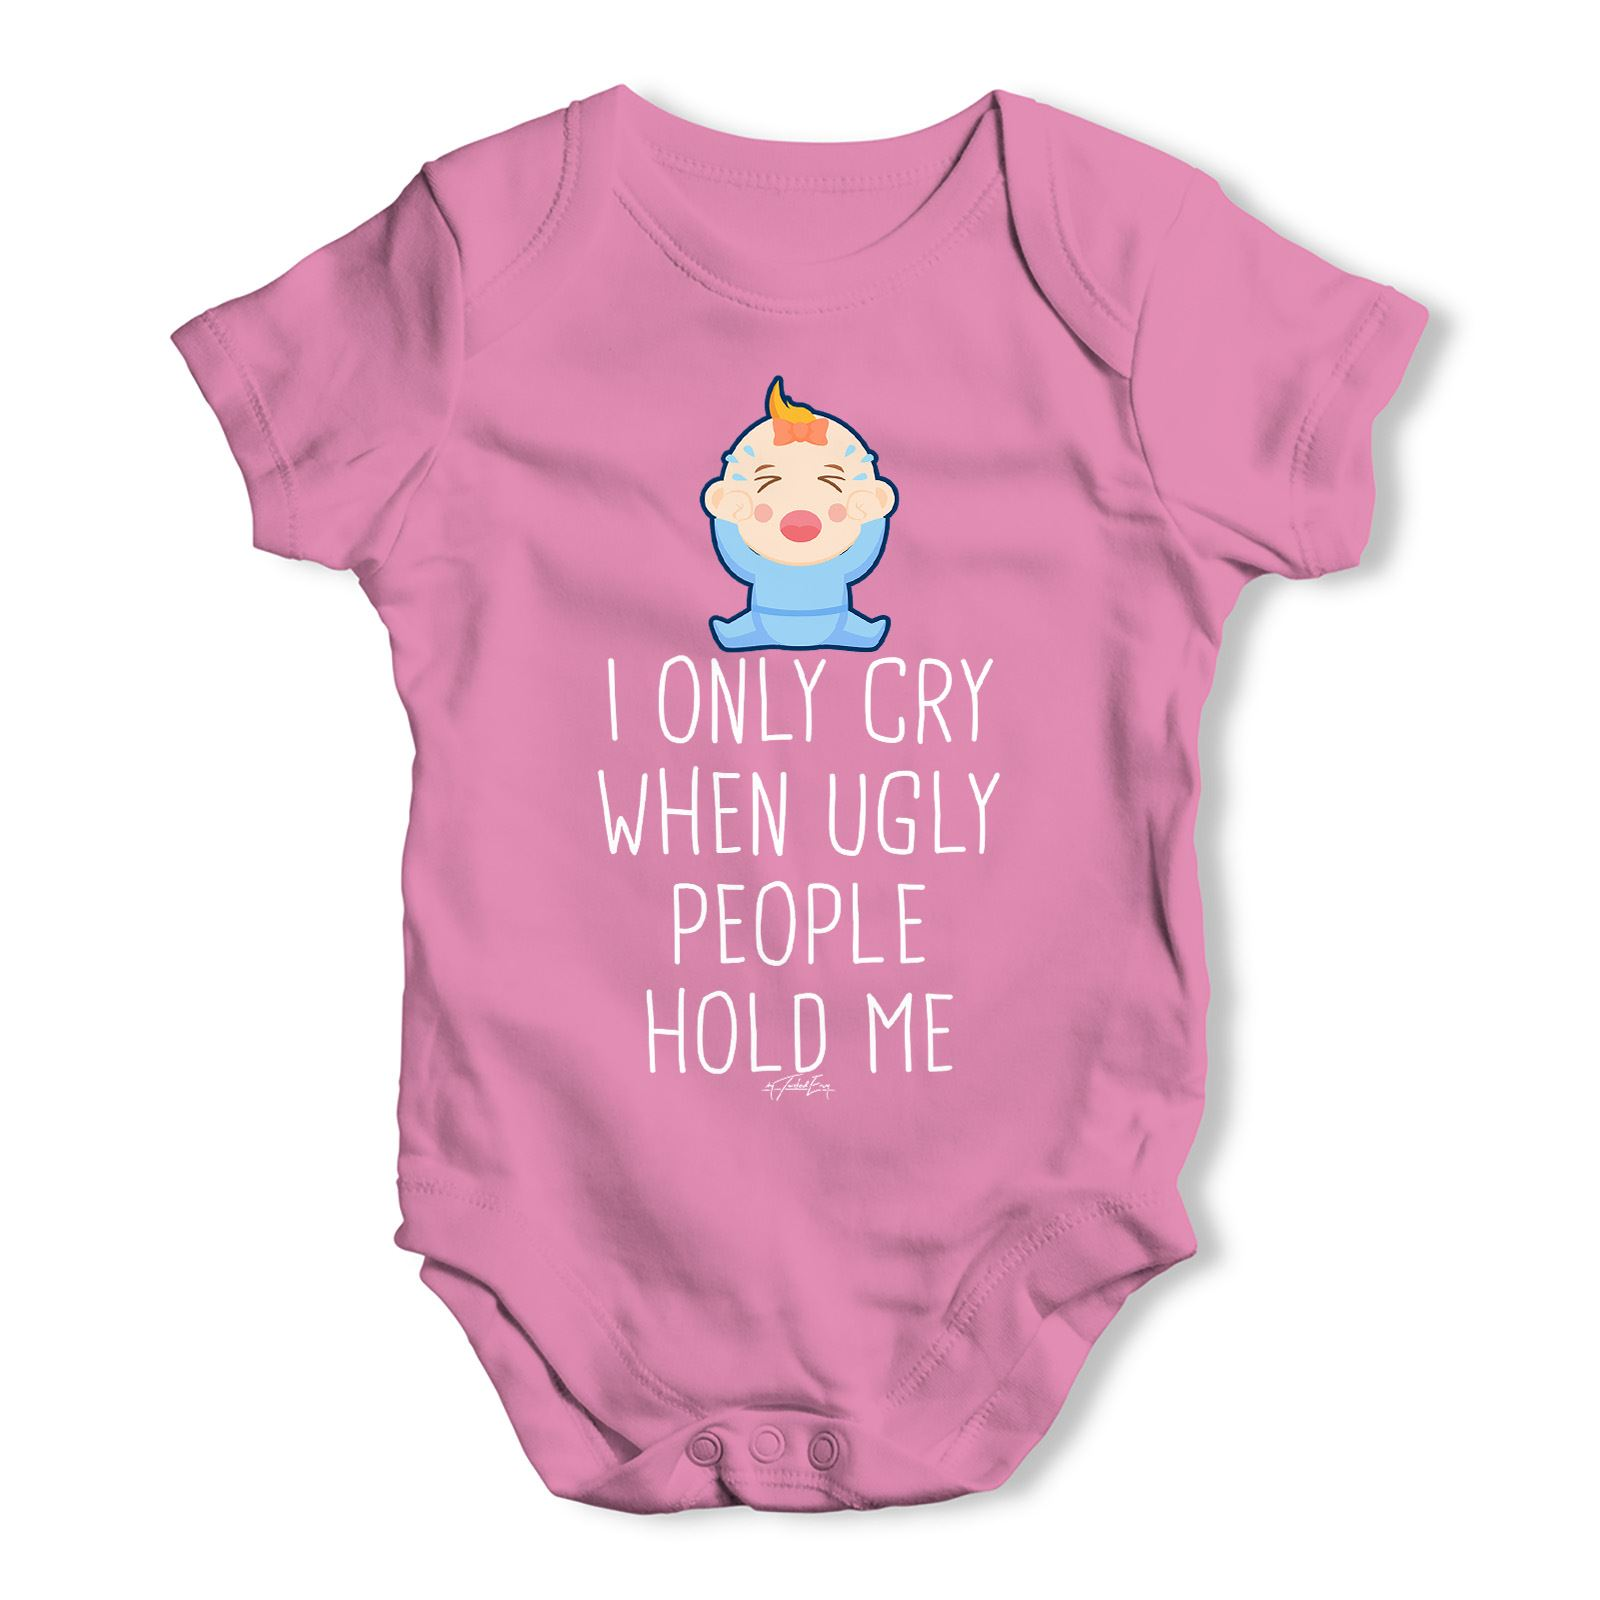 I Only Cry When Ugly People Hold Me Baby Unisex Funny Baby Grow Bodysuit